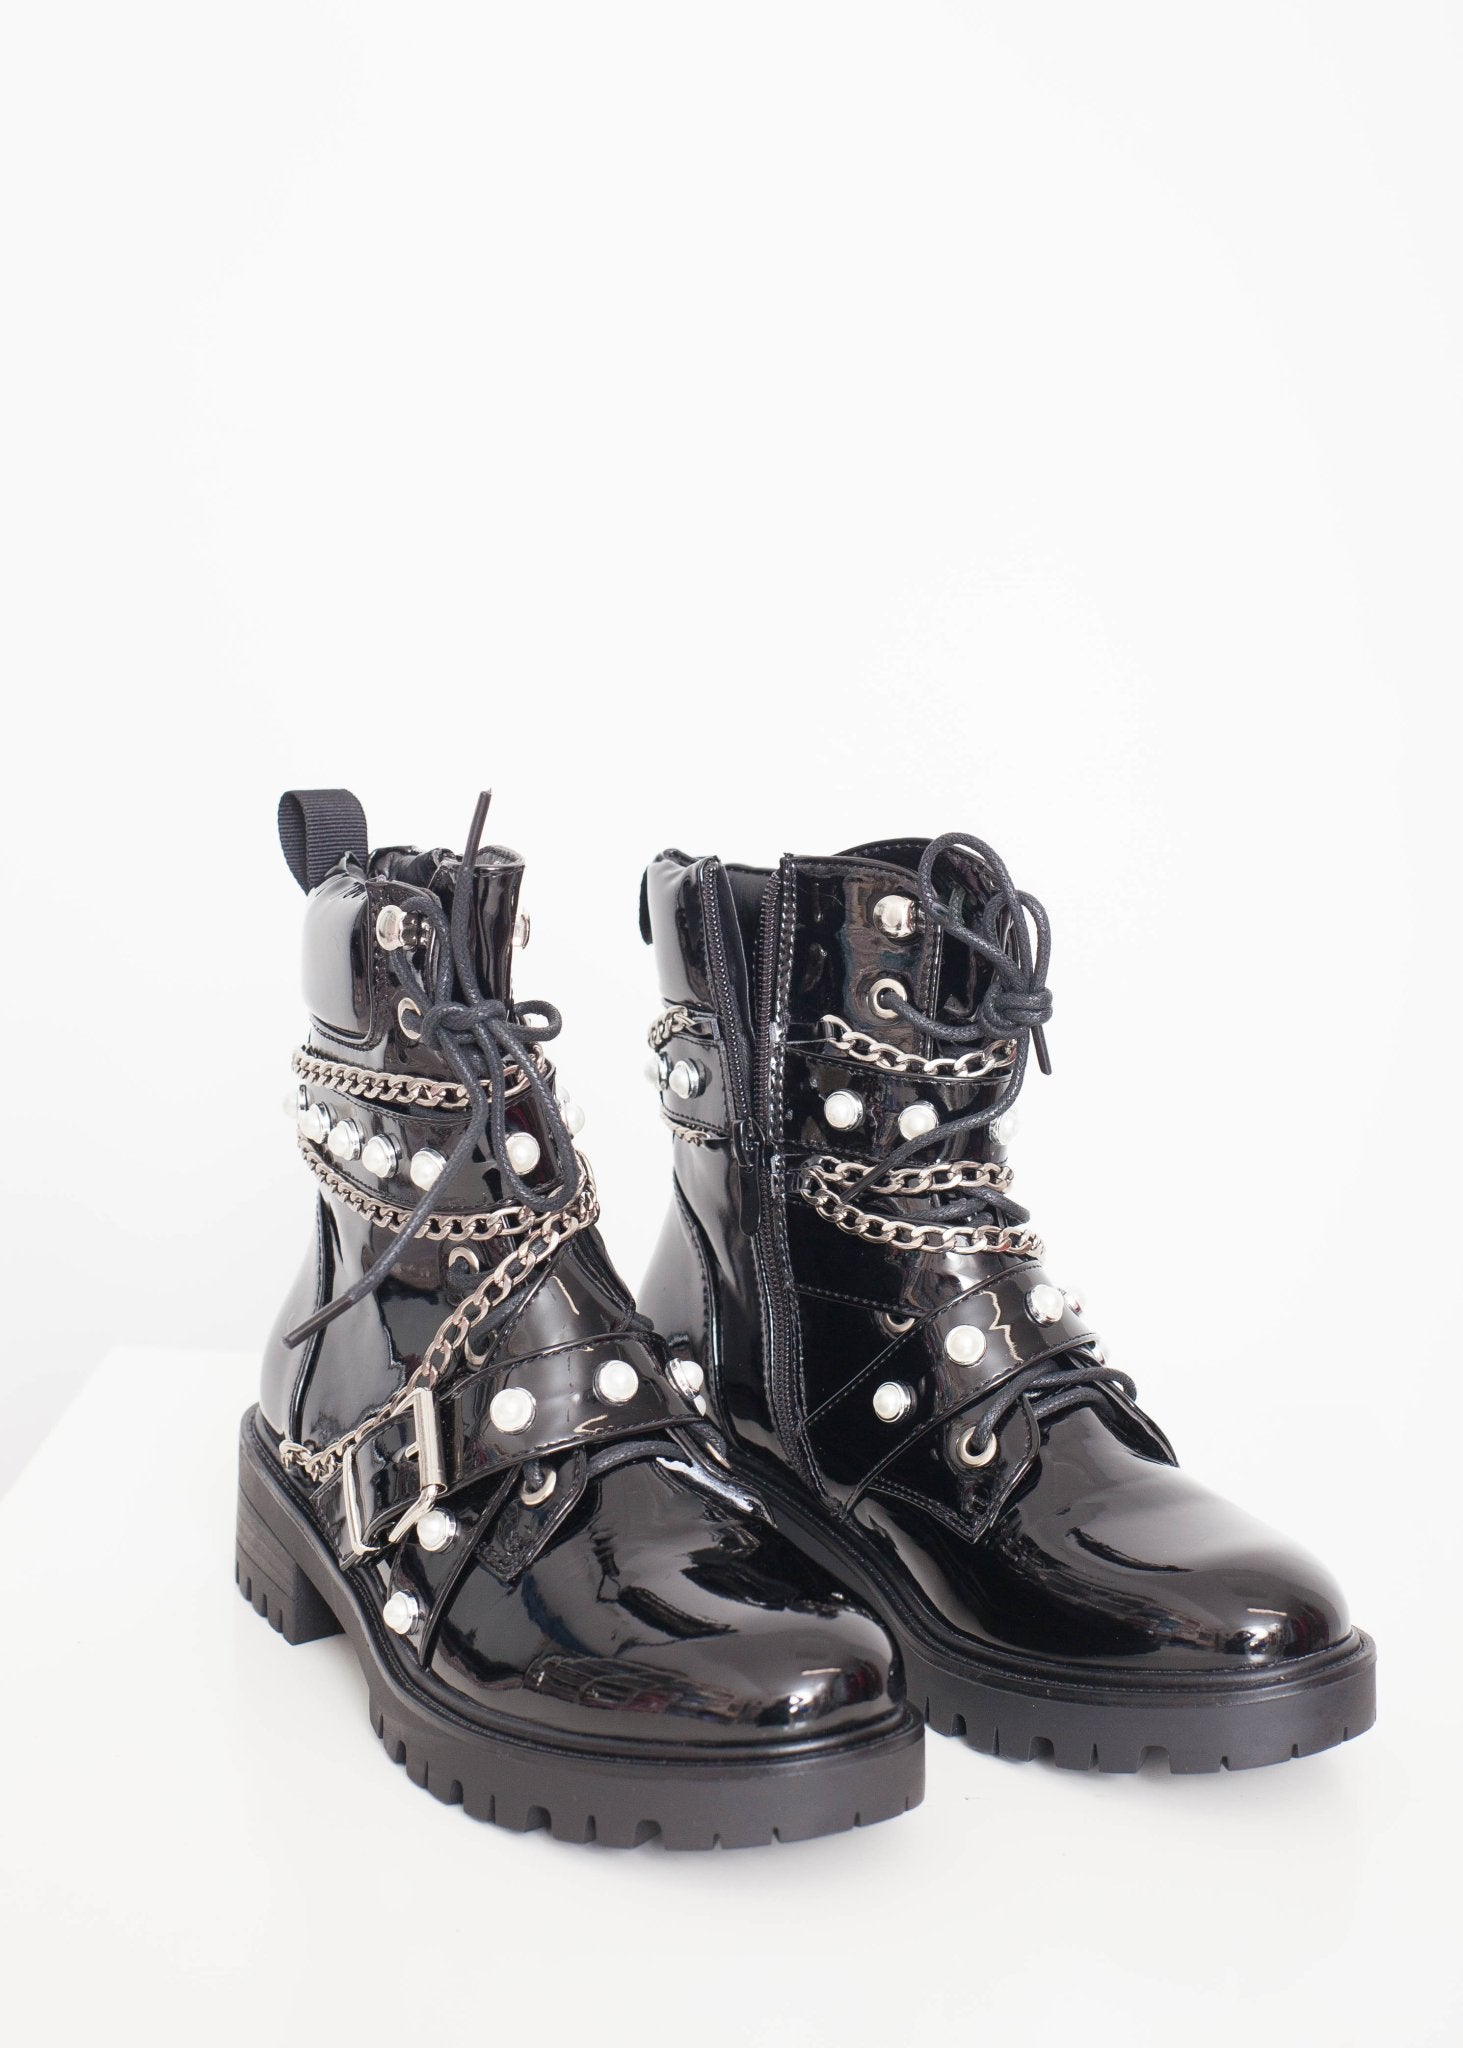 Gabby Detailed Biker Boot In Black - The Walk in Wardrobe